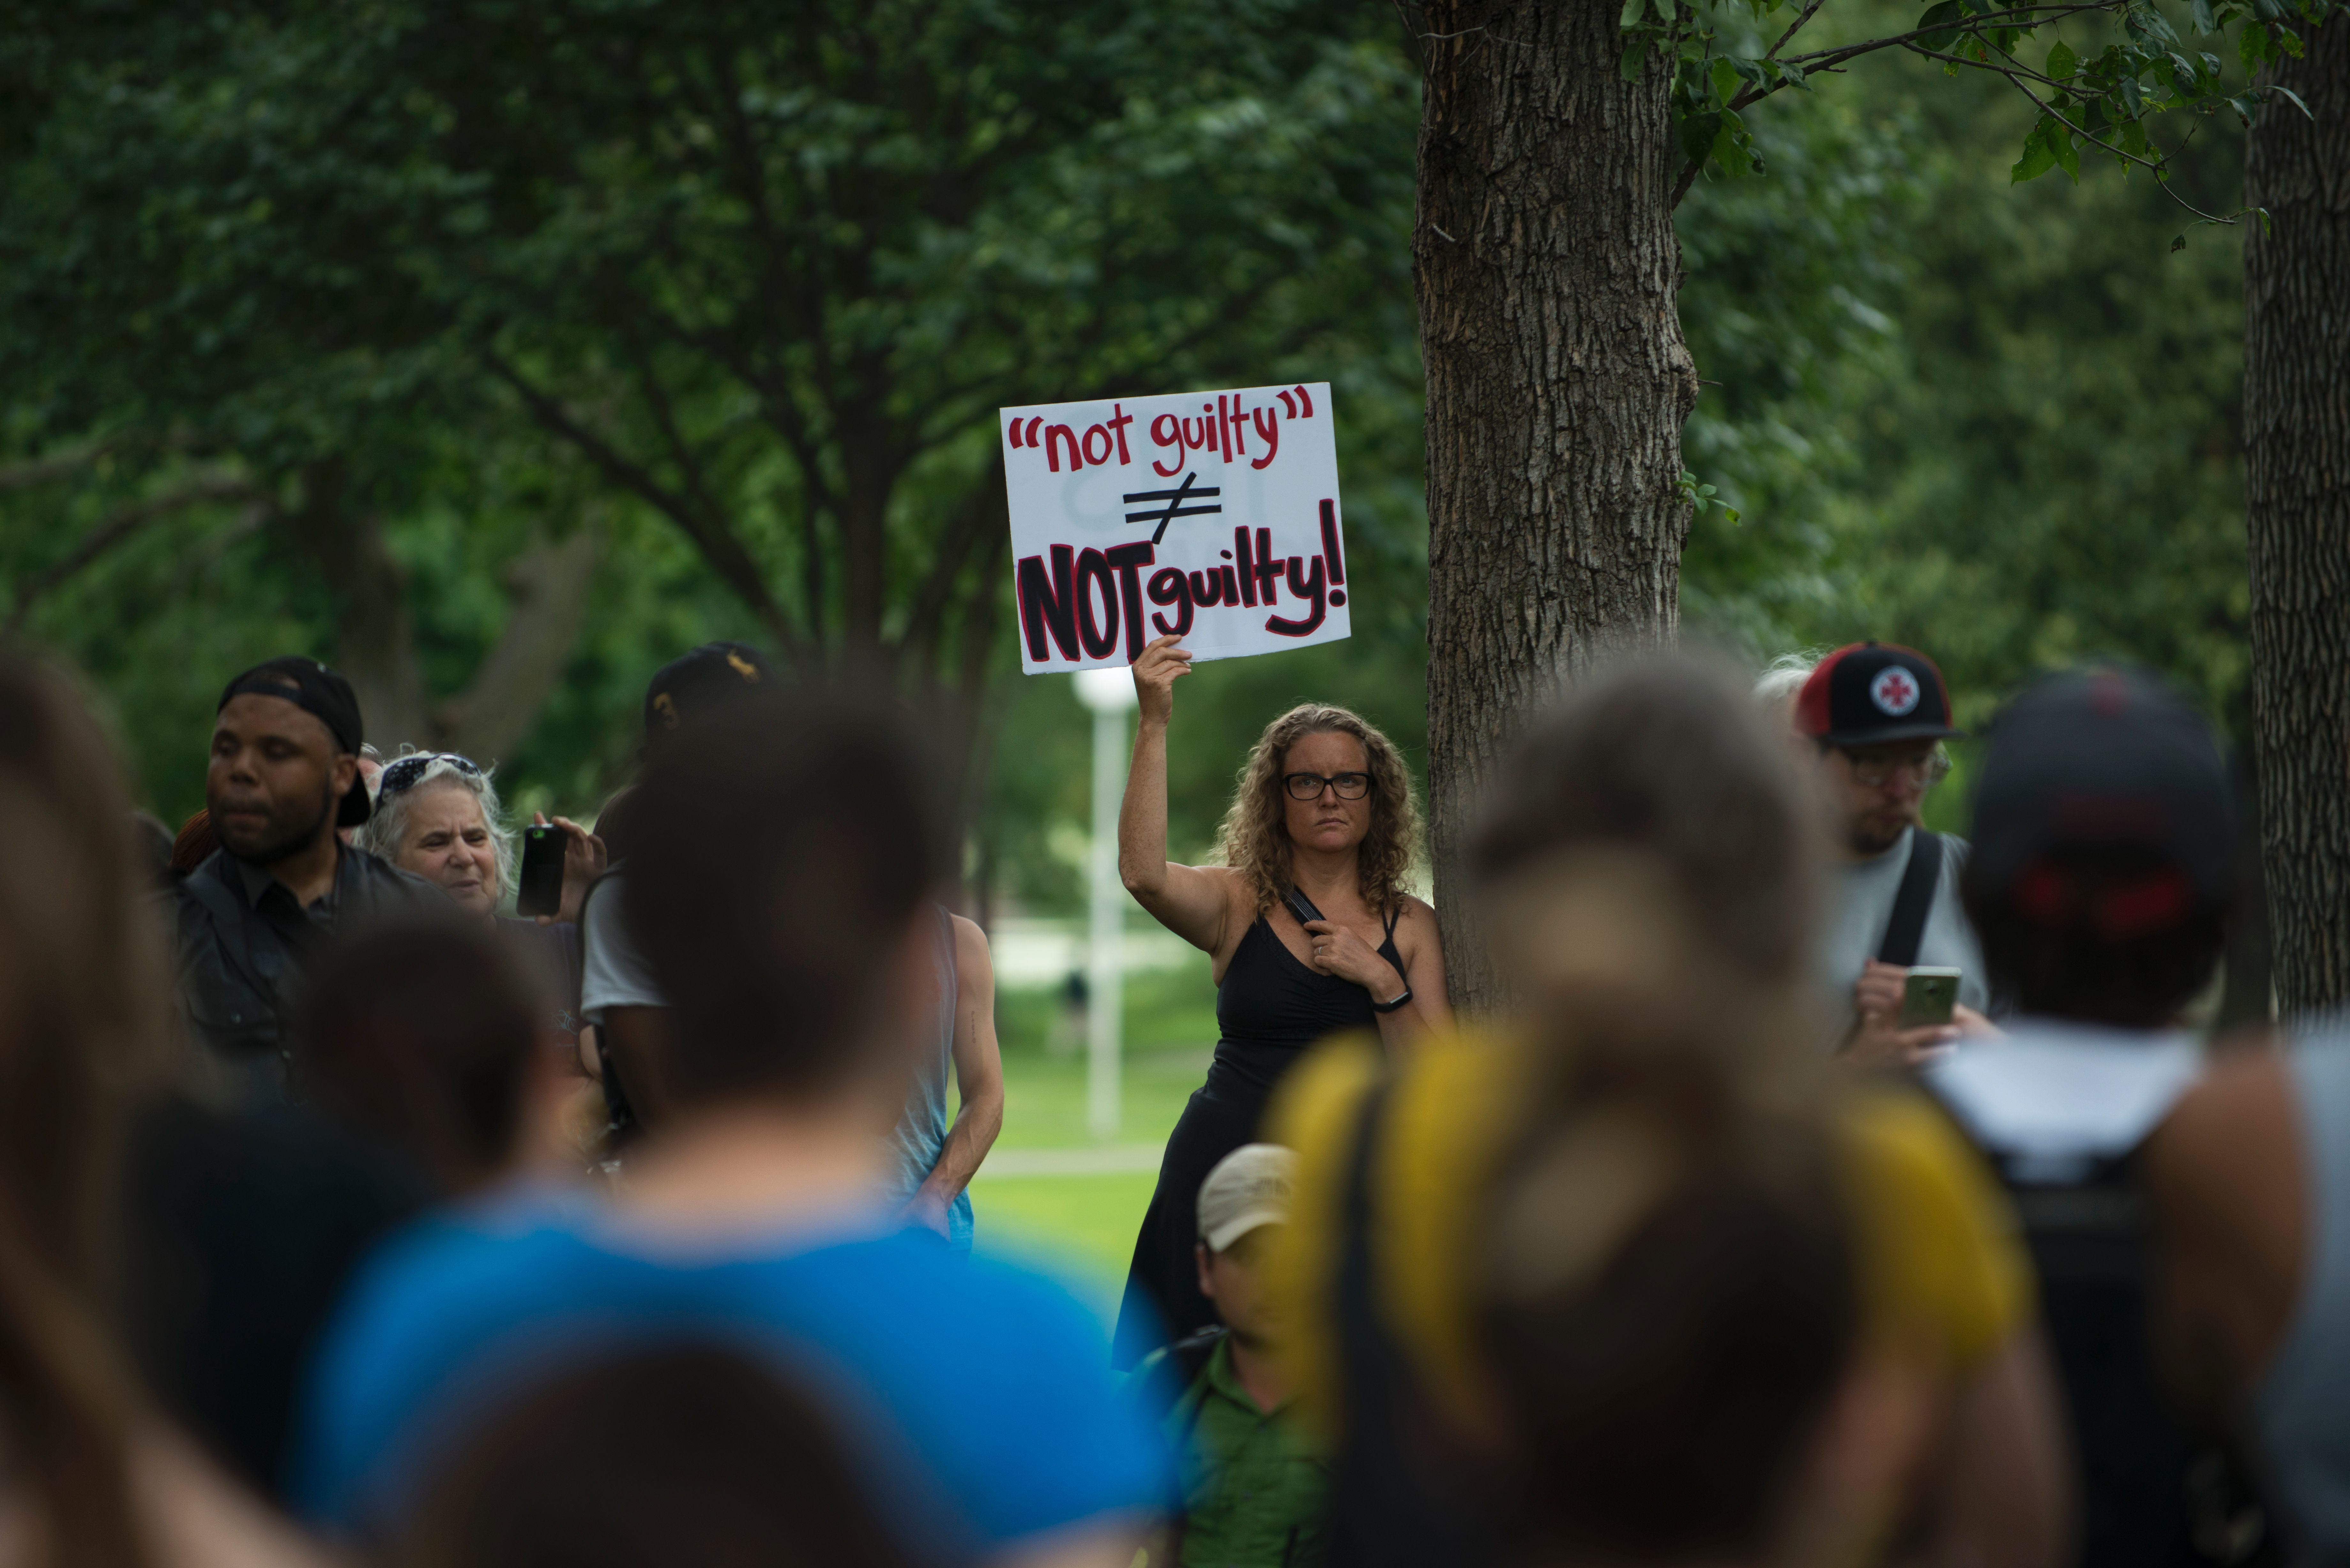 Protesters gather in Loring Park on July 17, 2017 in Minneapolis. Demonstrations took place for several days after a jury acquitted police officer Jeronimo Yanez, 29, in the shooting death of 32-year-old Philando Castile during a traffic stop in July 2016. (Stephen Maturen /AFP/Getty Images)